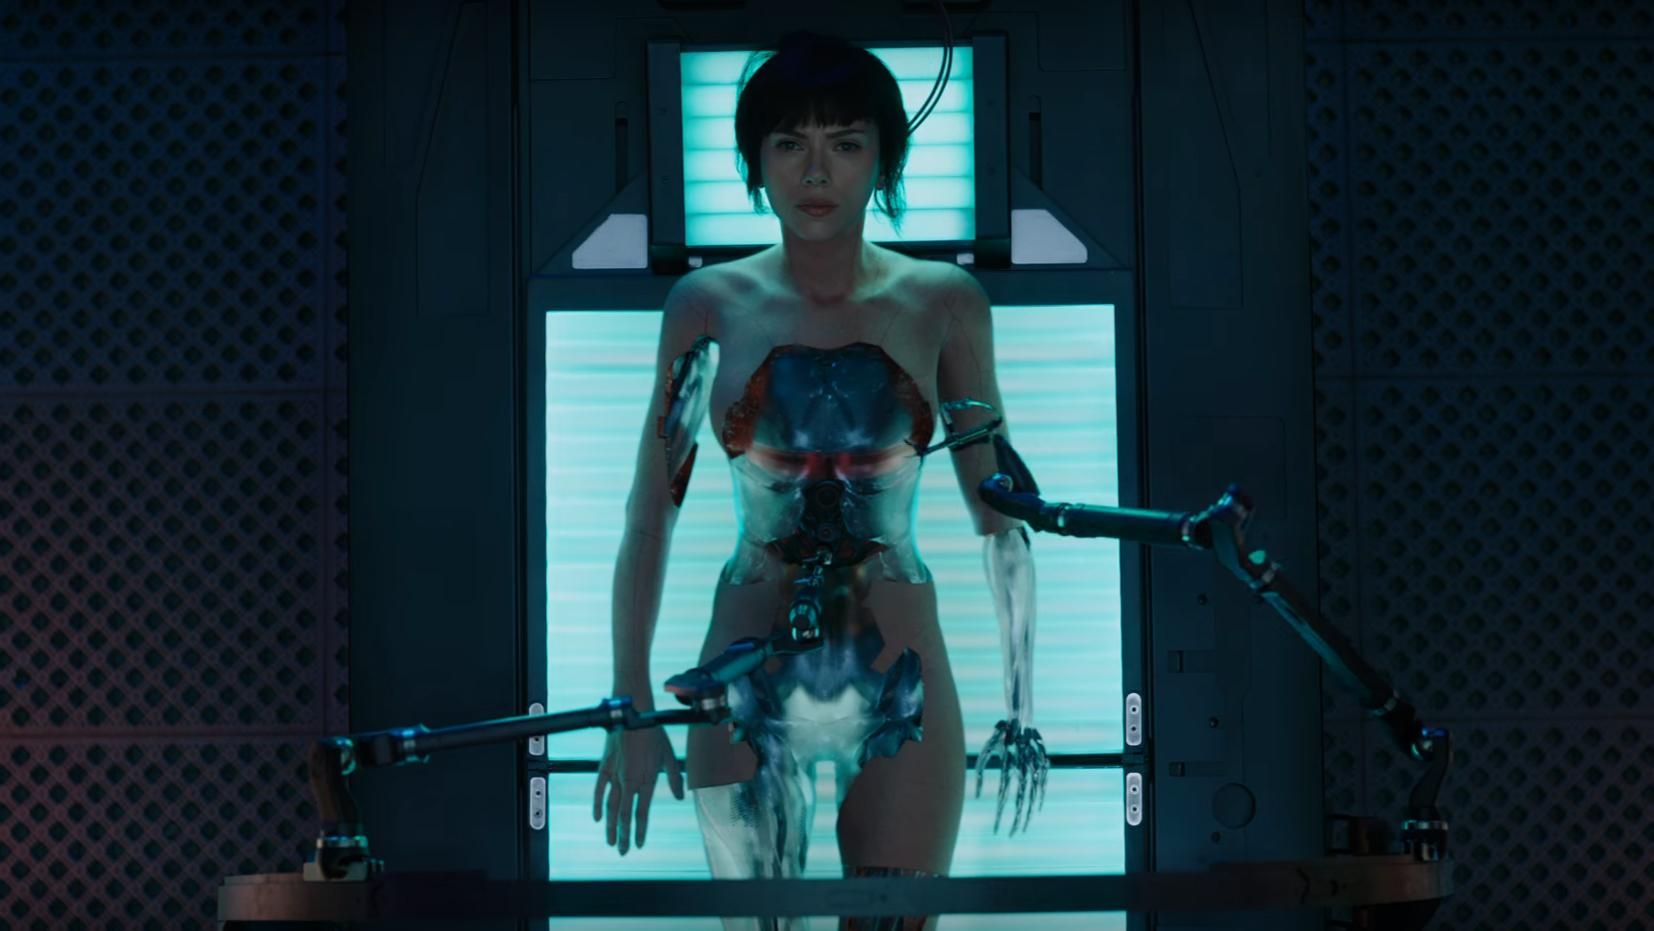 Ghost in the Shell trailer: First full look at Scarlett Johansson in controversial manga adaptation